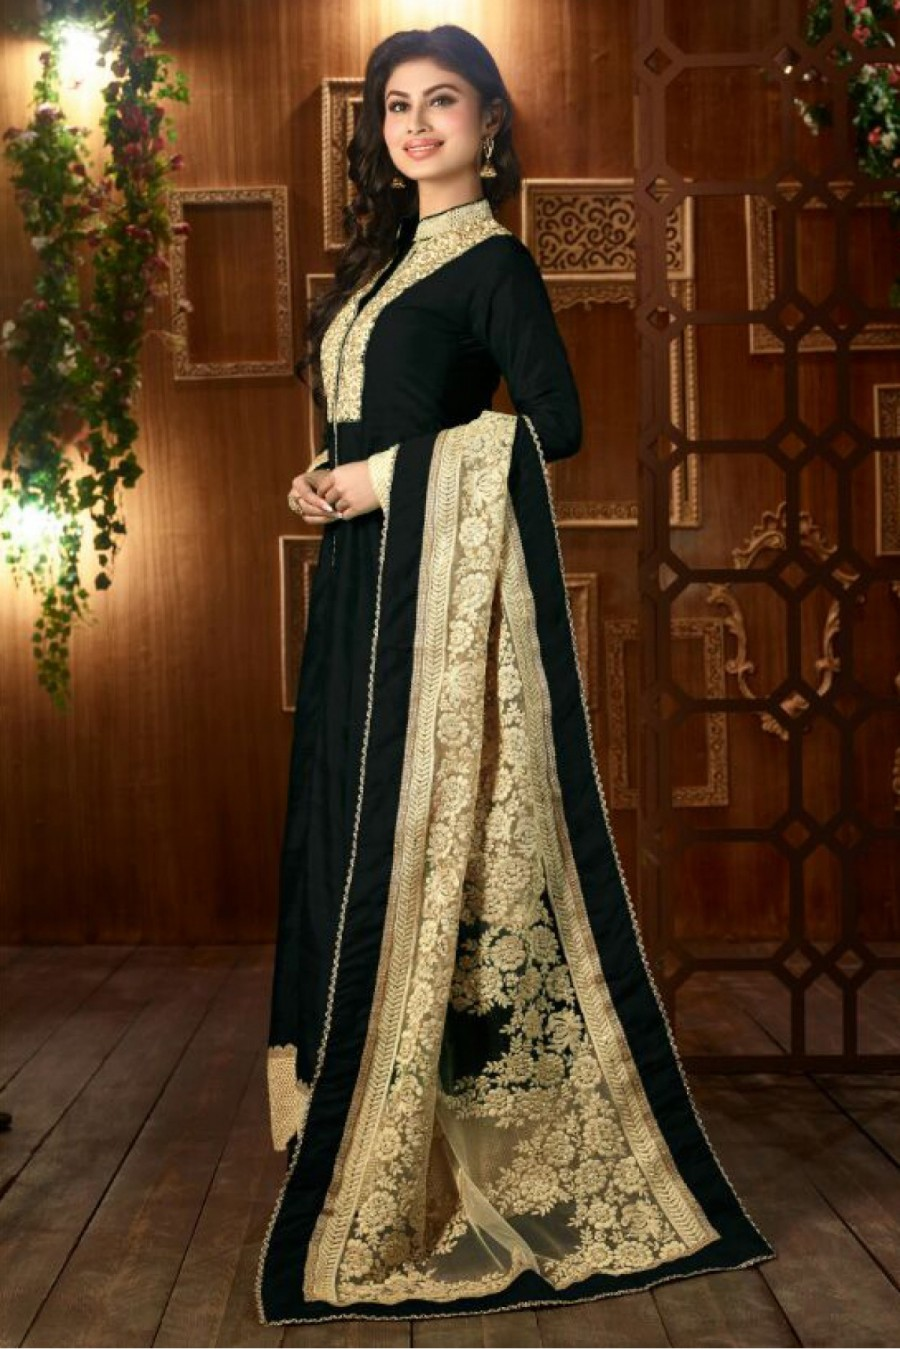 Buy Bollywood Mouni Roy Taffeta And Silk Party Wear Anarkali Suit In Black Colour Online